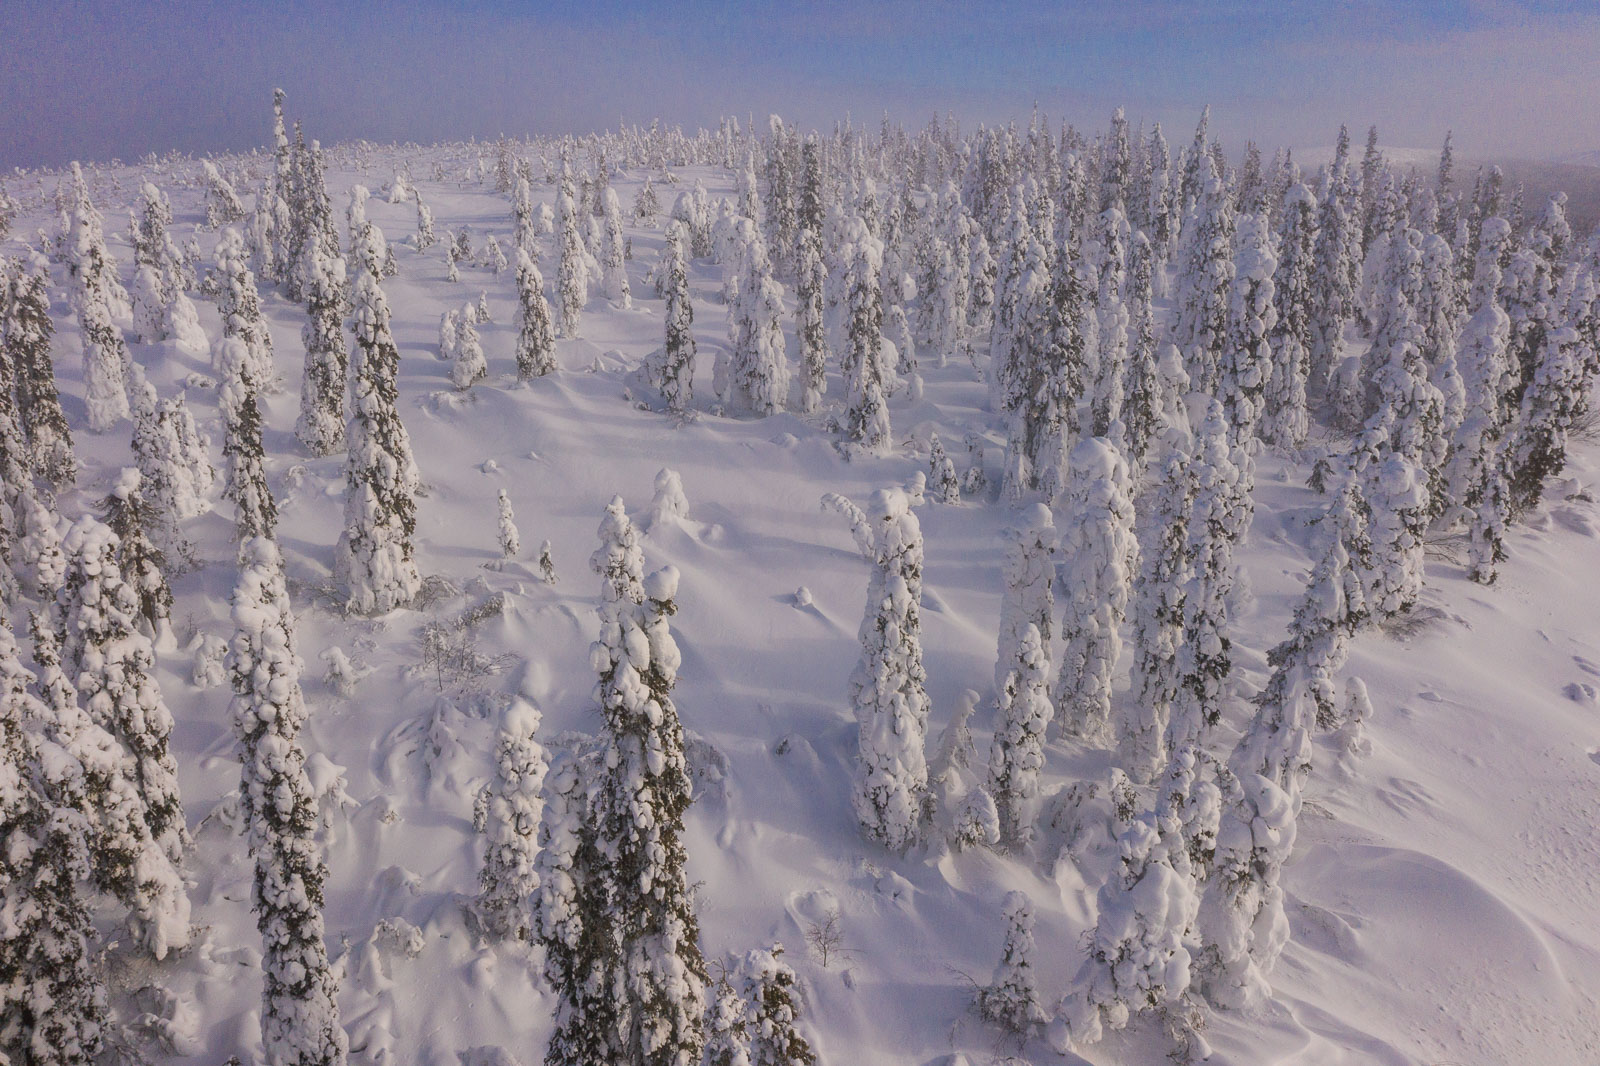 Aerial view of a snowy cluster of trees along the Dalton Highway near the Yukon River, Alaska.